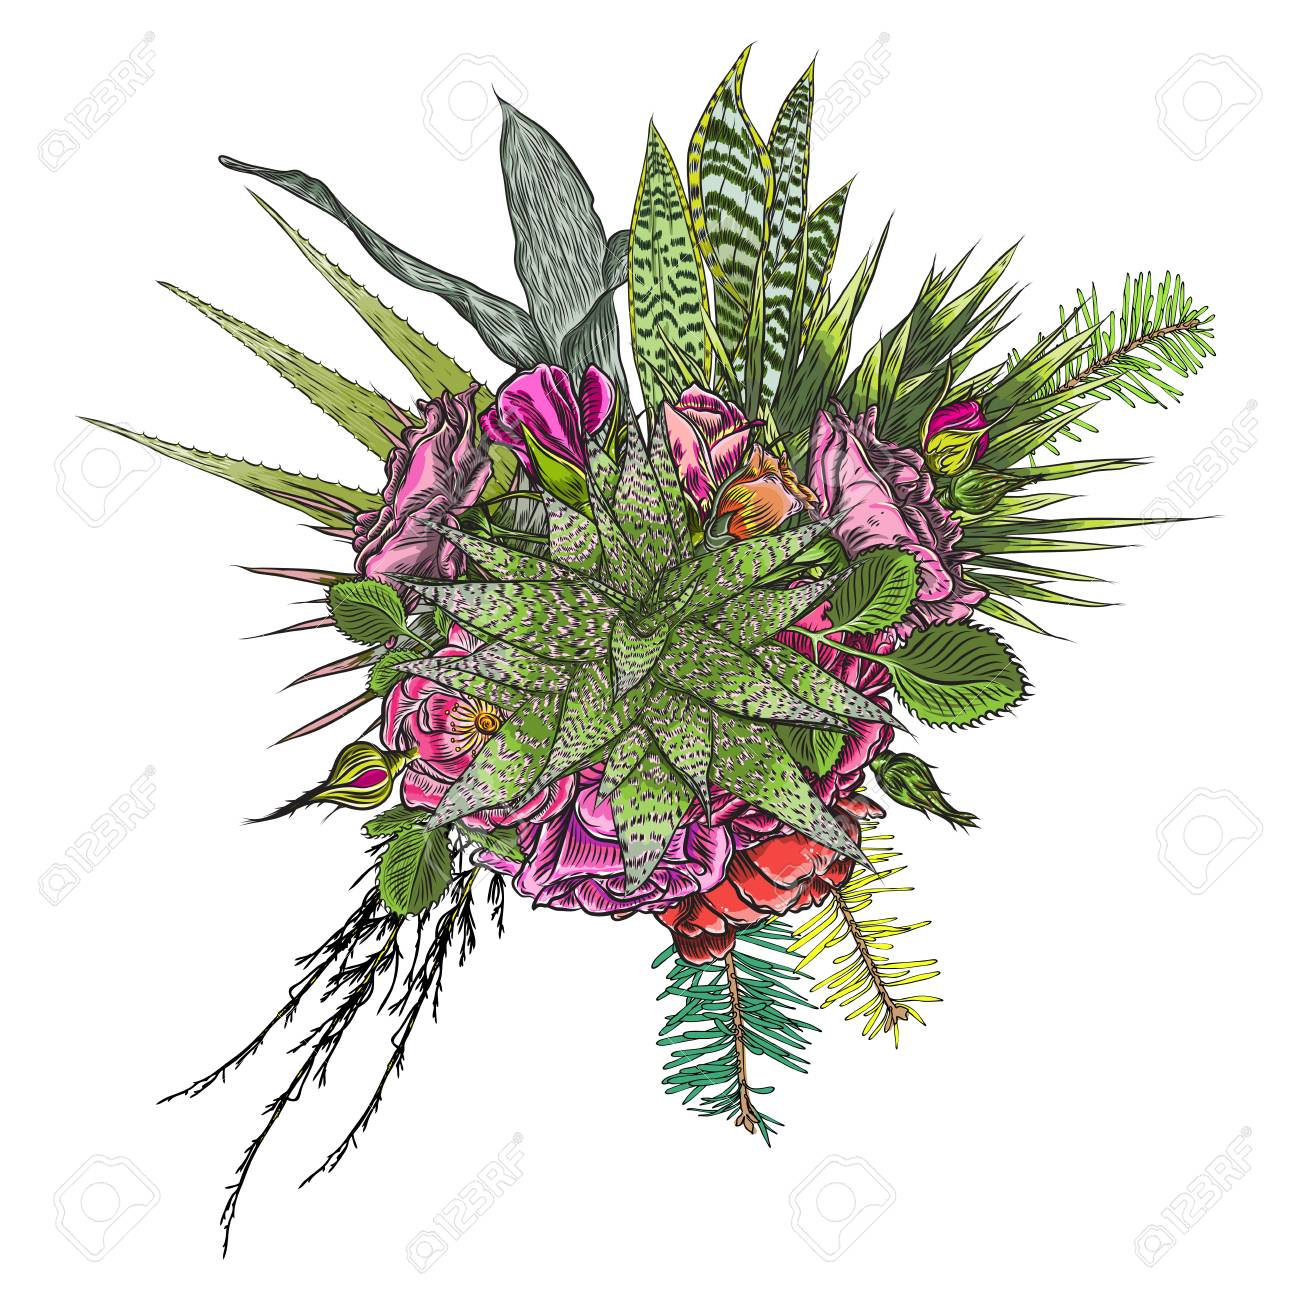 Green Colorful Succulent Bouquet Ikebana Tattoo Concept Selection Royalty Free Cliparts Vectors And Stock Illustration Image 104013532